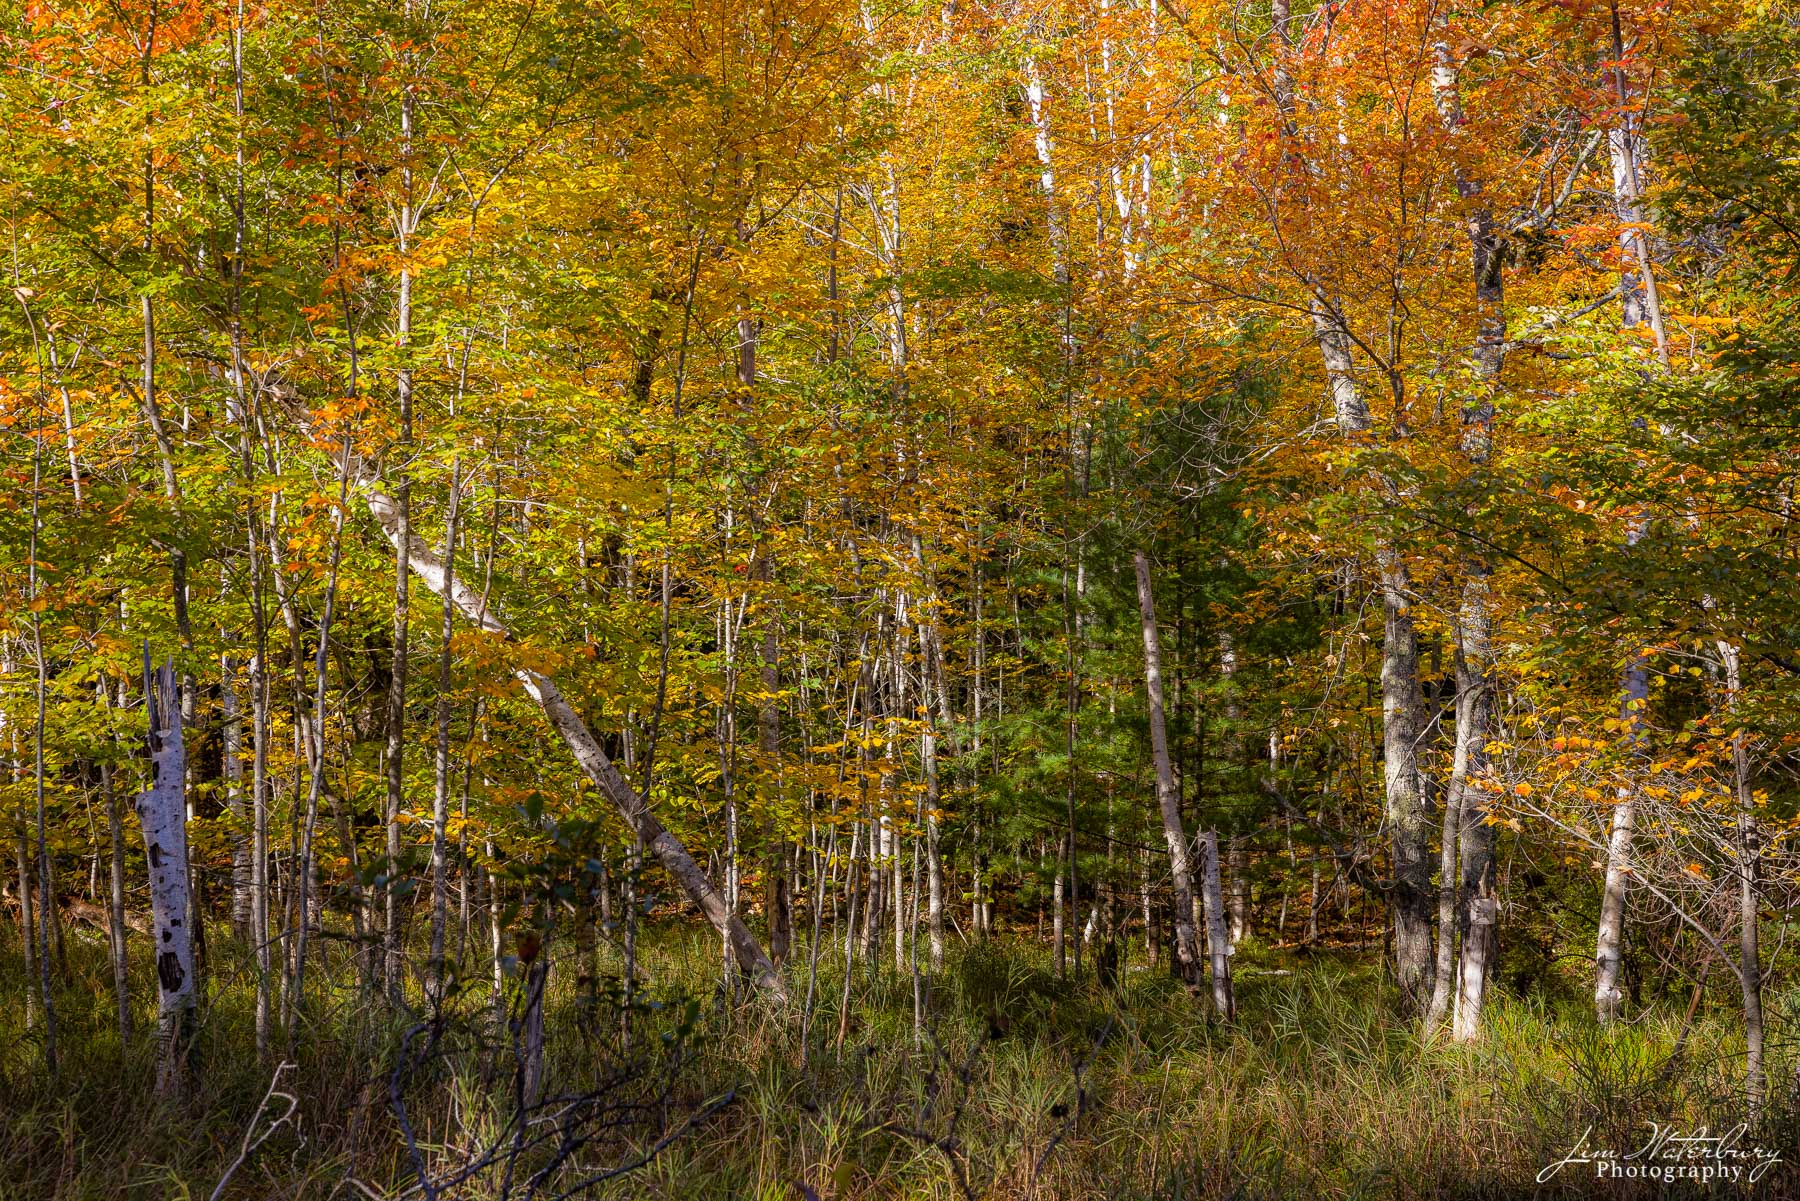 Fall colors bathed in early morning light along a carriage road in Acadia National Park.